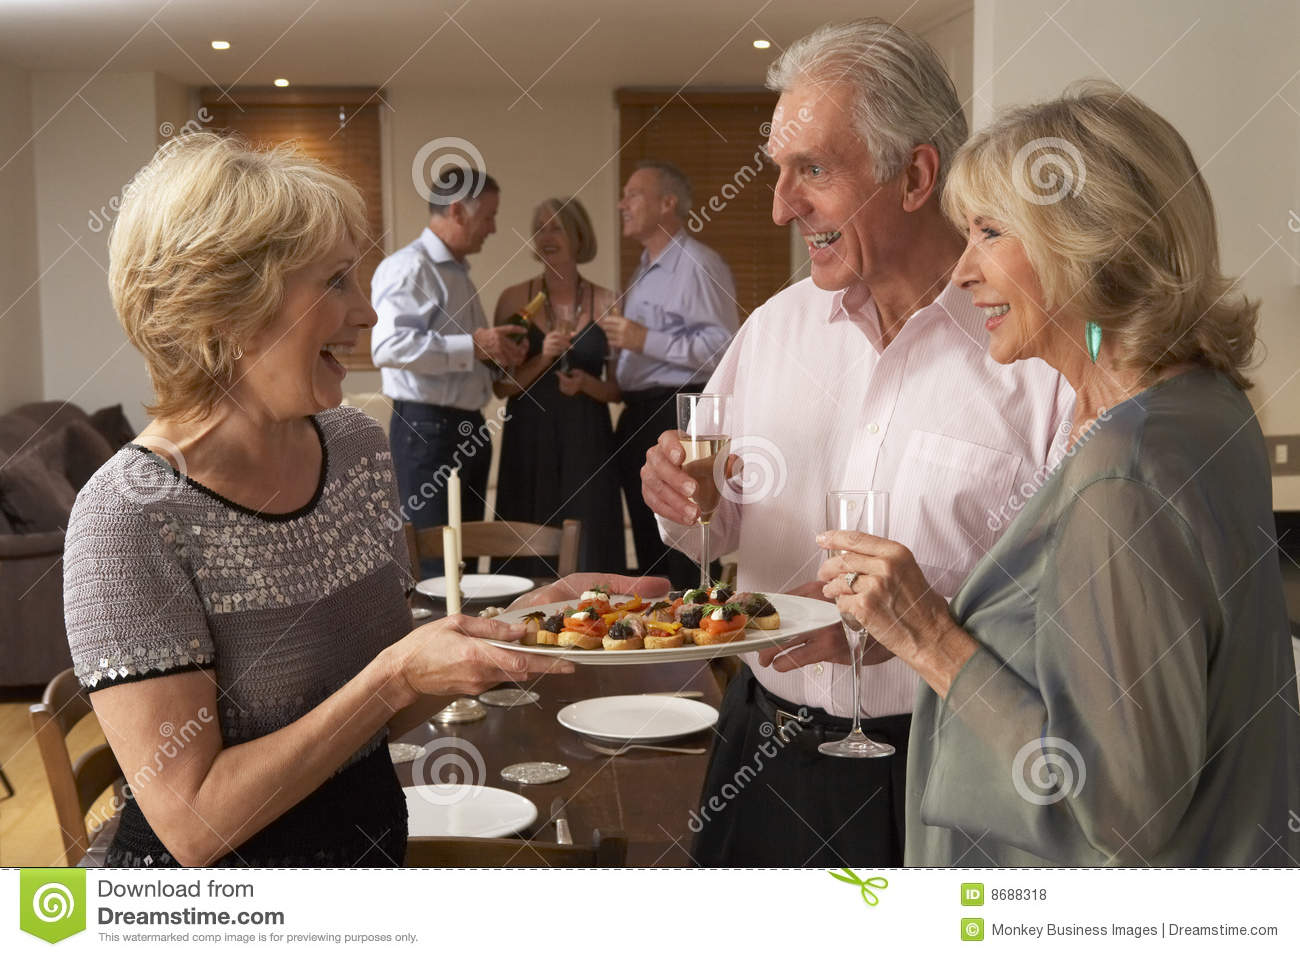 D dinner hors oeuvres party serving woman